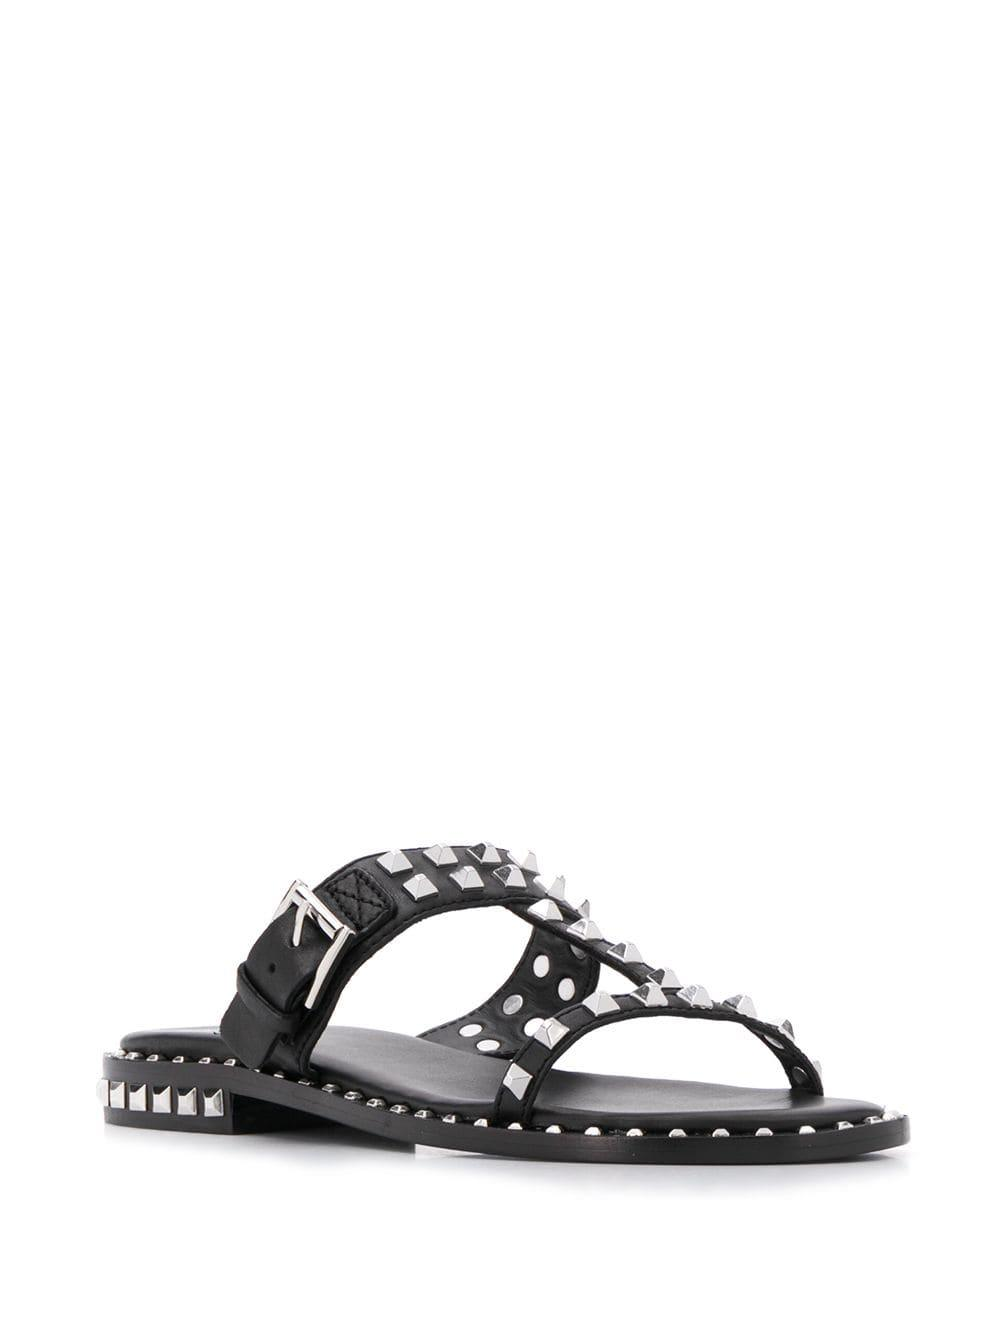 c2c5e79c7fd4 Ash Prince Studded Sandals in Black - Lyst